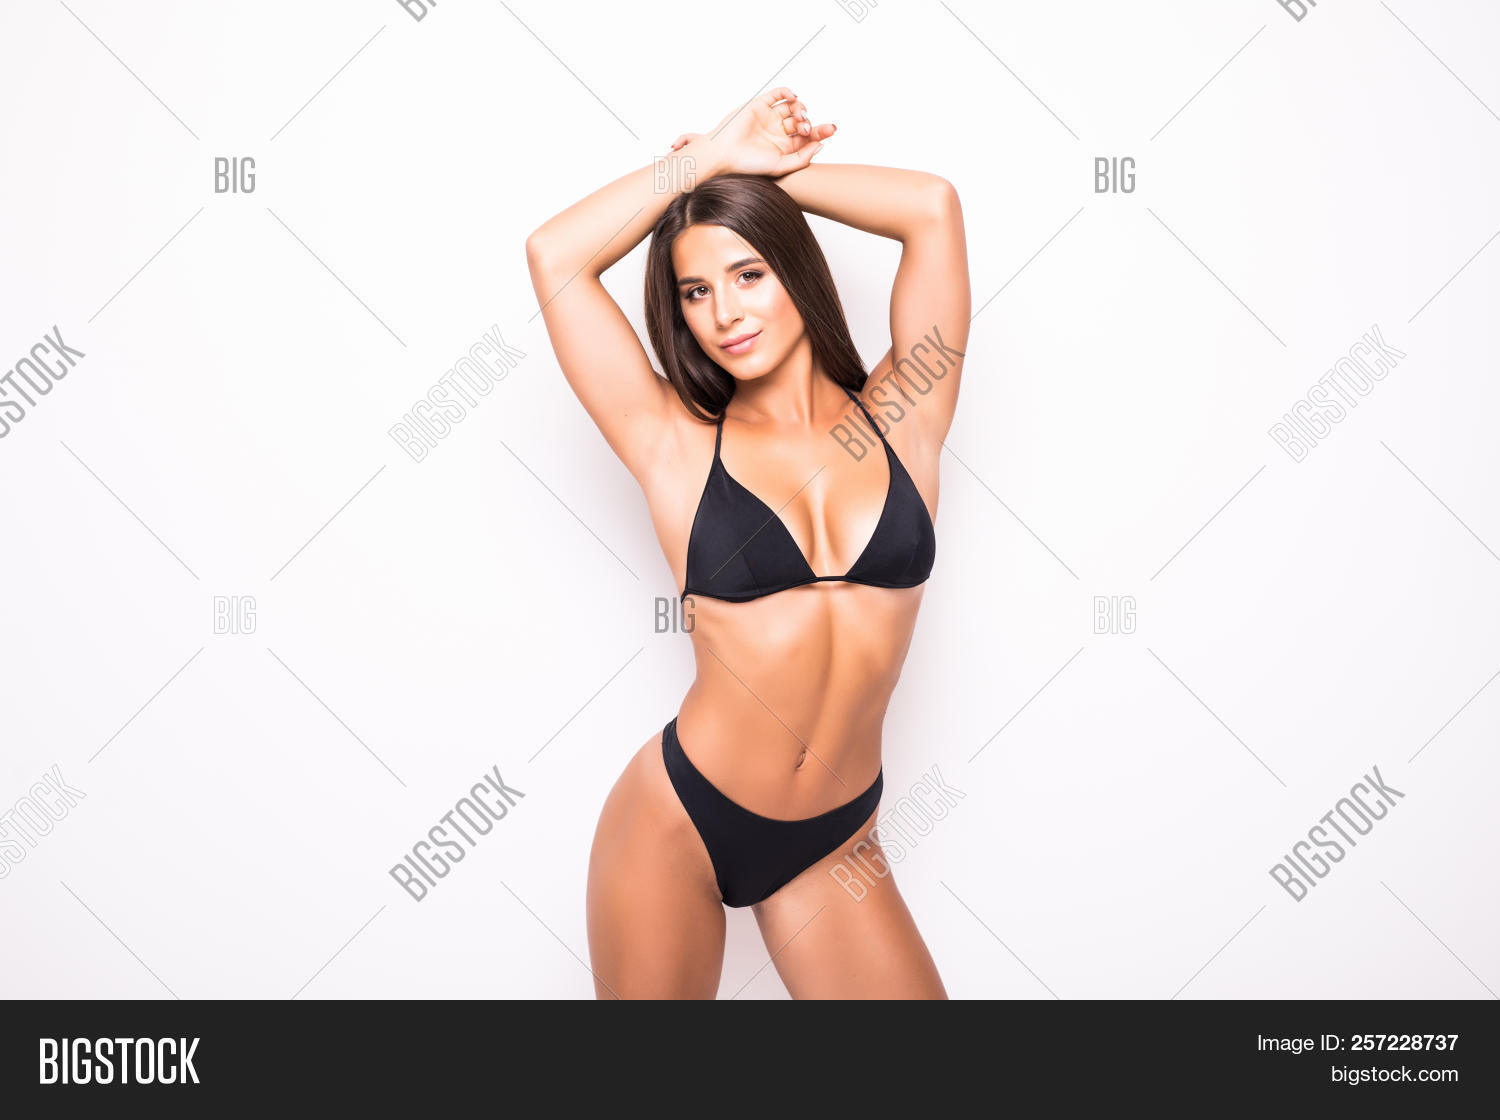 d72c8d5ae65 Slim body of young woman in black bikini. Girl with healthy sporty figure  isolated on white background